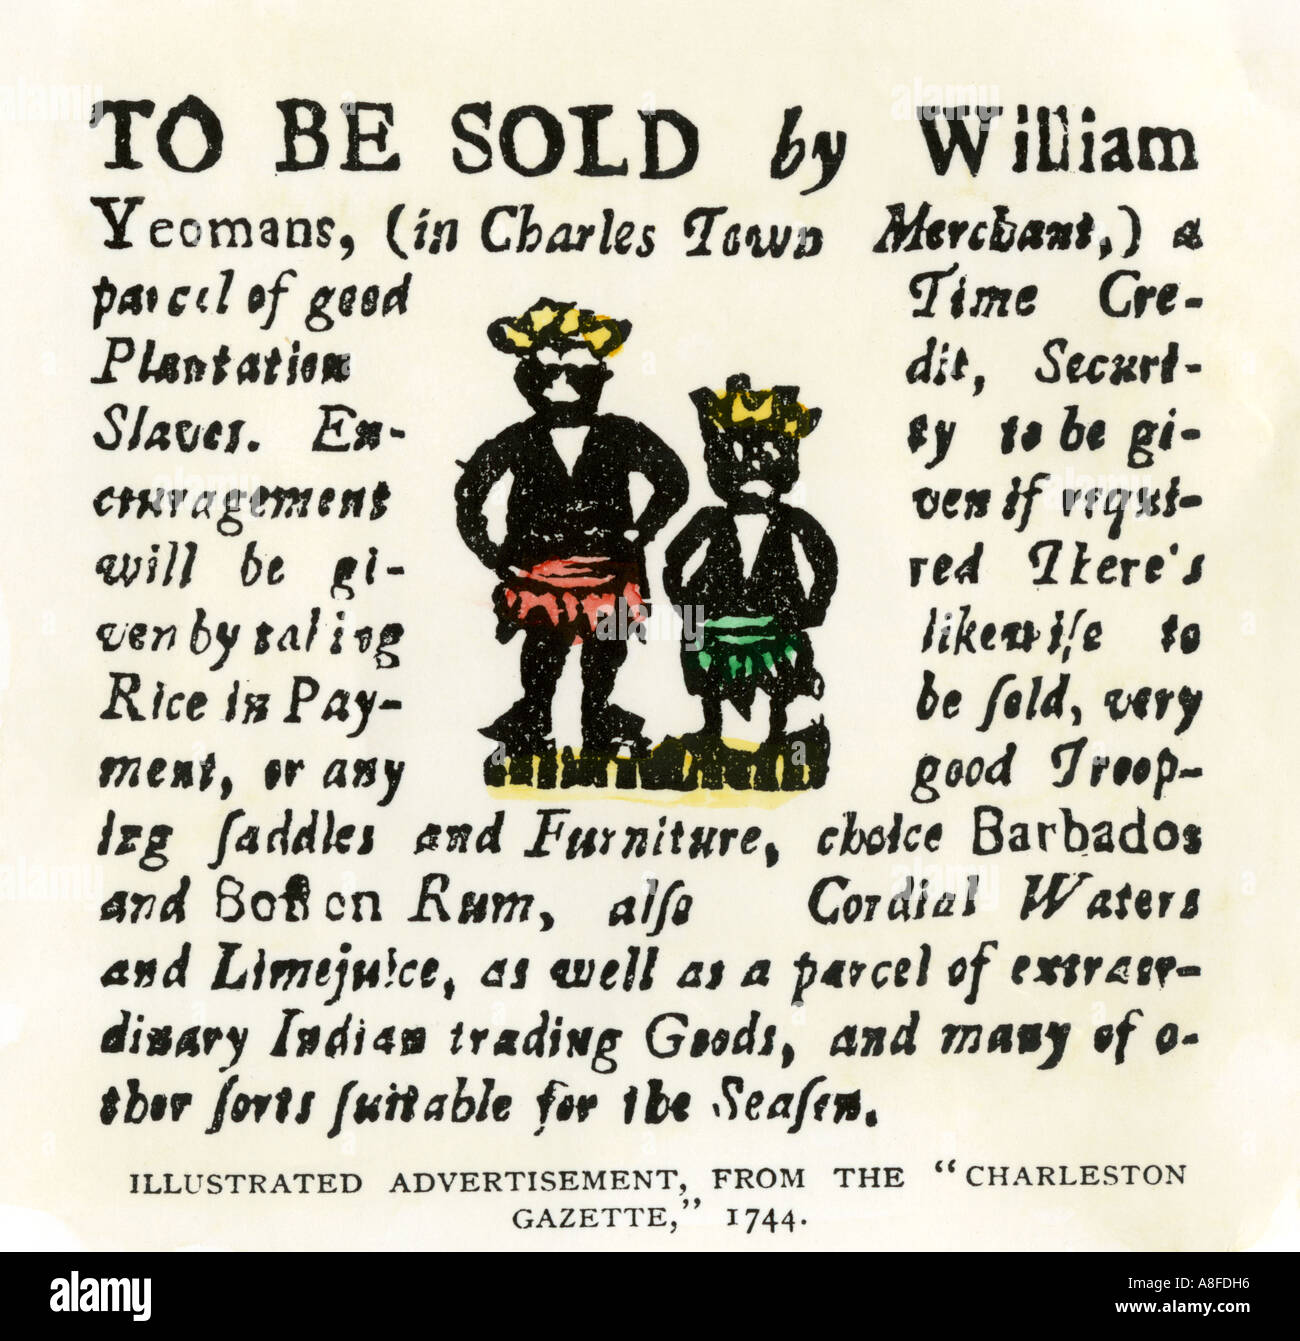 Sale of slaves Barbados rum and seafaring goods advertisement from the Charleston Gazette South Carolina 1744. Hand - Stock Image